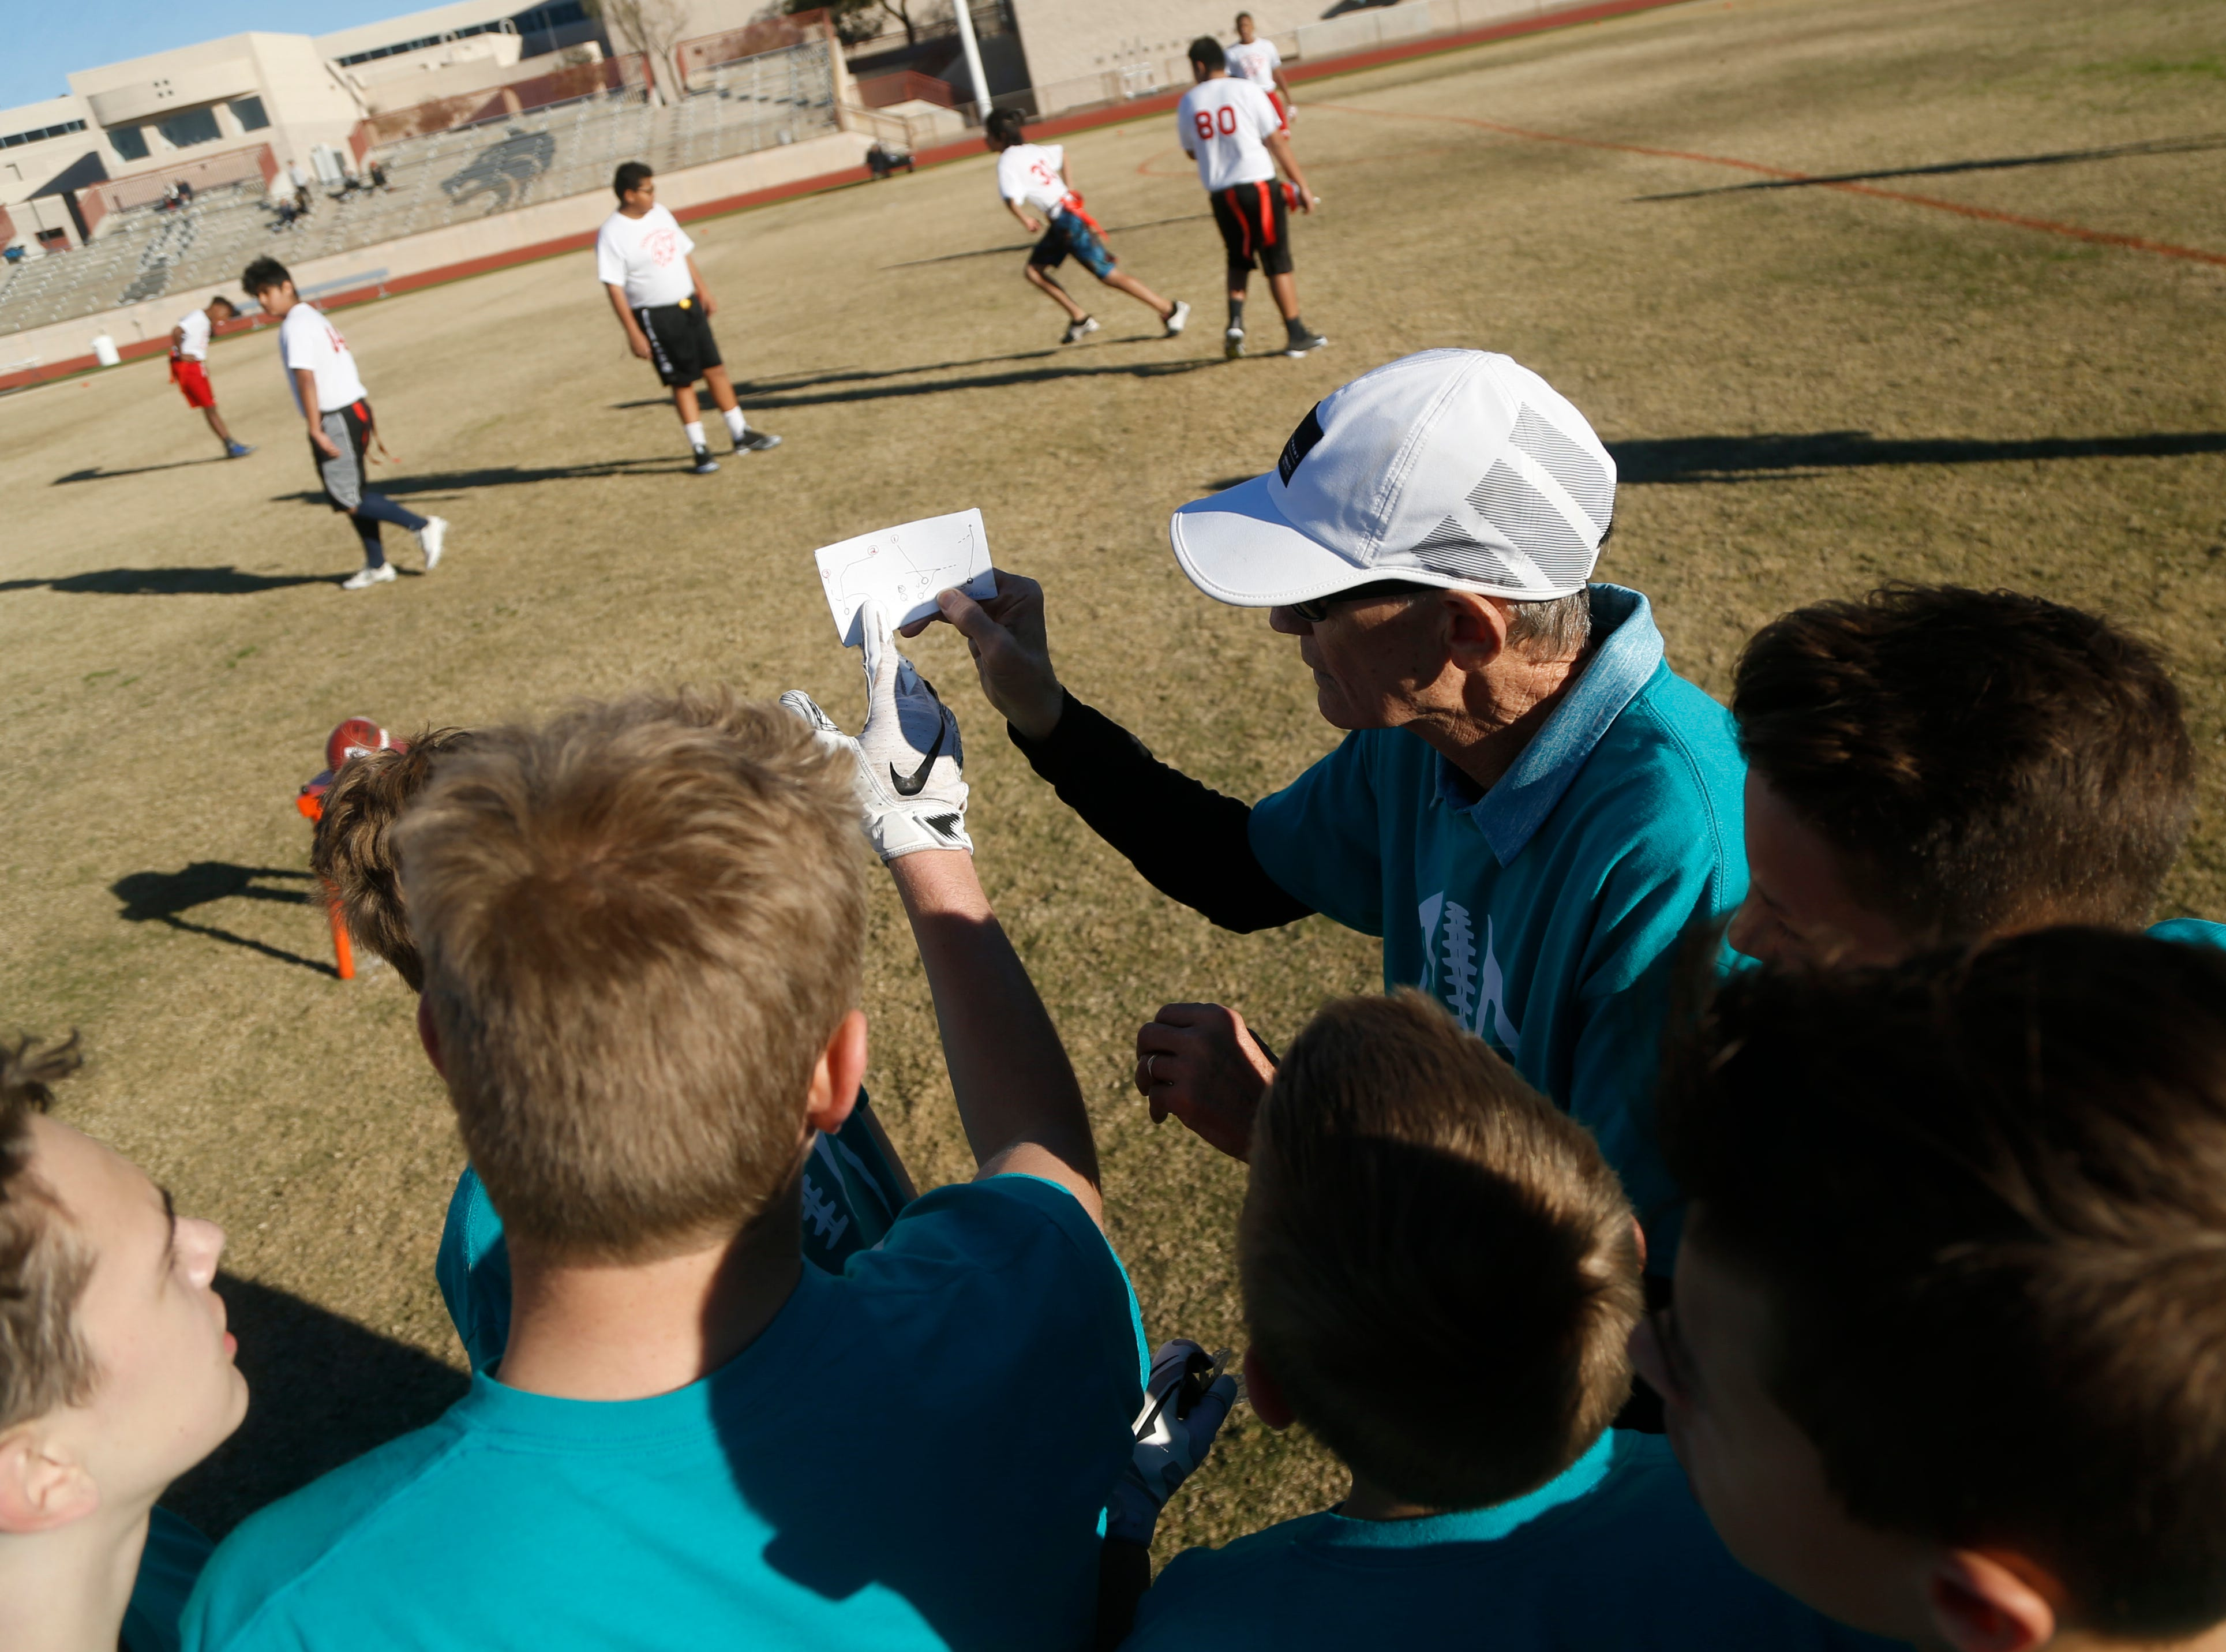 Jim Rattay, who is two wins away from being Arizona's all-time winningest coach, coaches Copper Ridge Elementary's co-ed flag football team during a flag football game at Desert Mountain High School in Scottsdale, Ariz. on January 26, 2019.